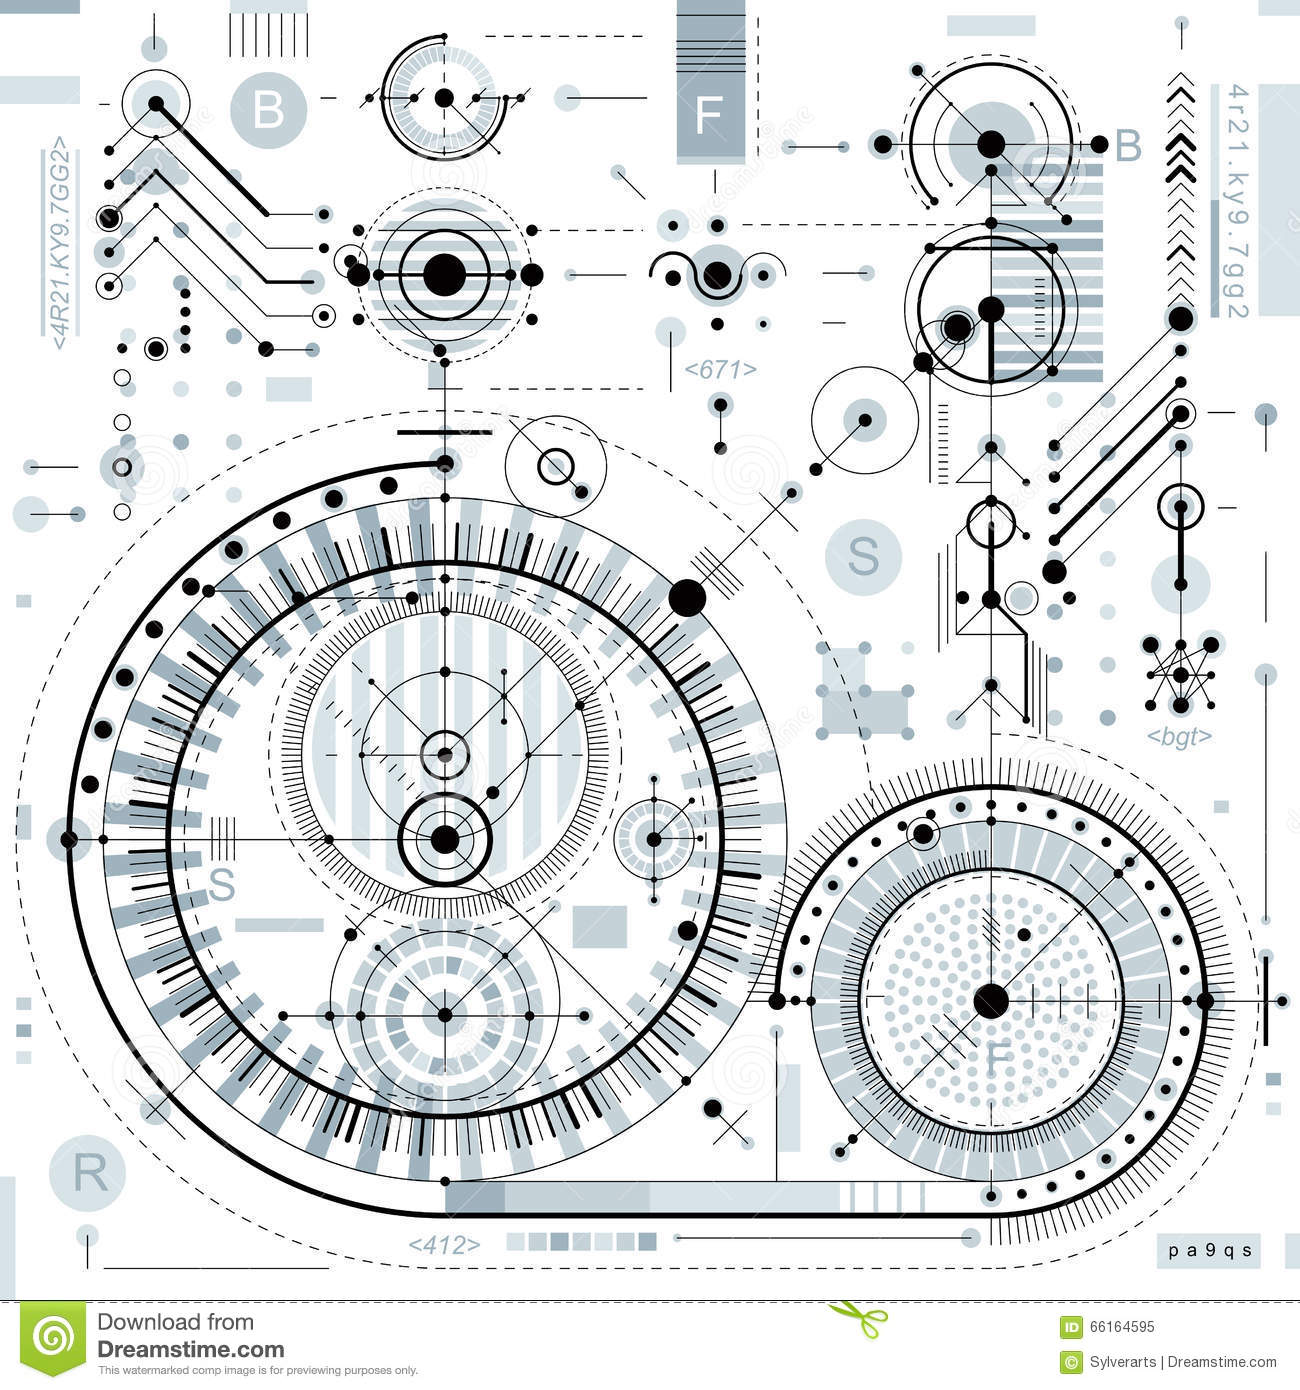 Drawing Lines Engineering : Technical drawing with dashed lines and geometric shapes